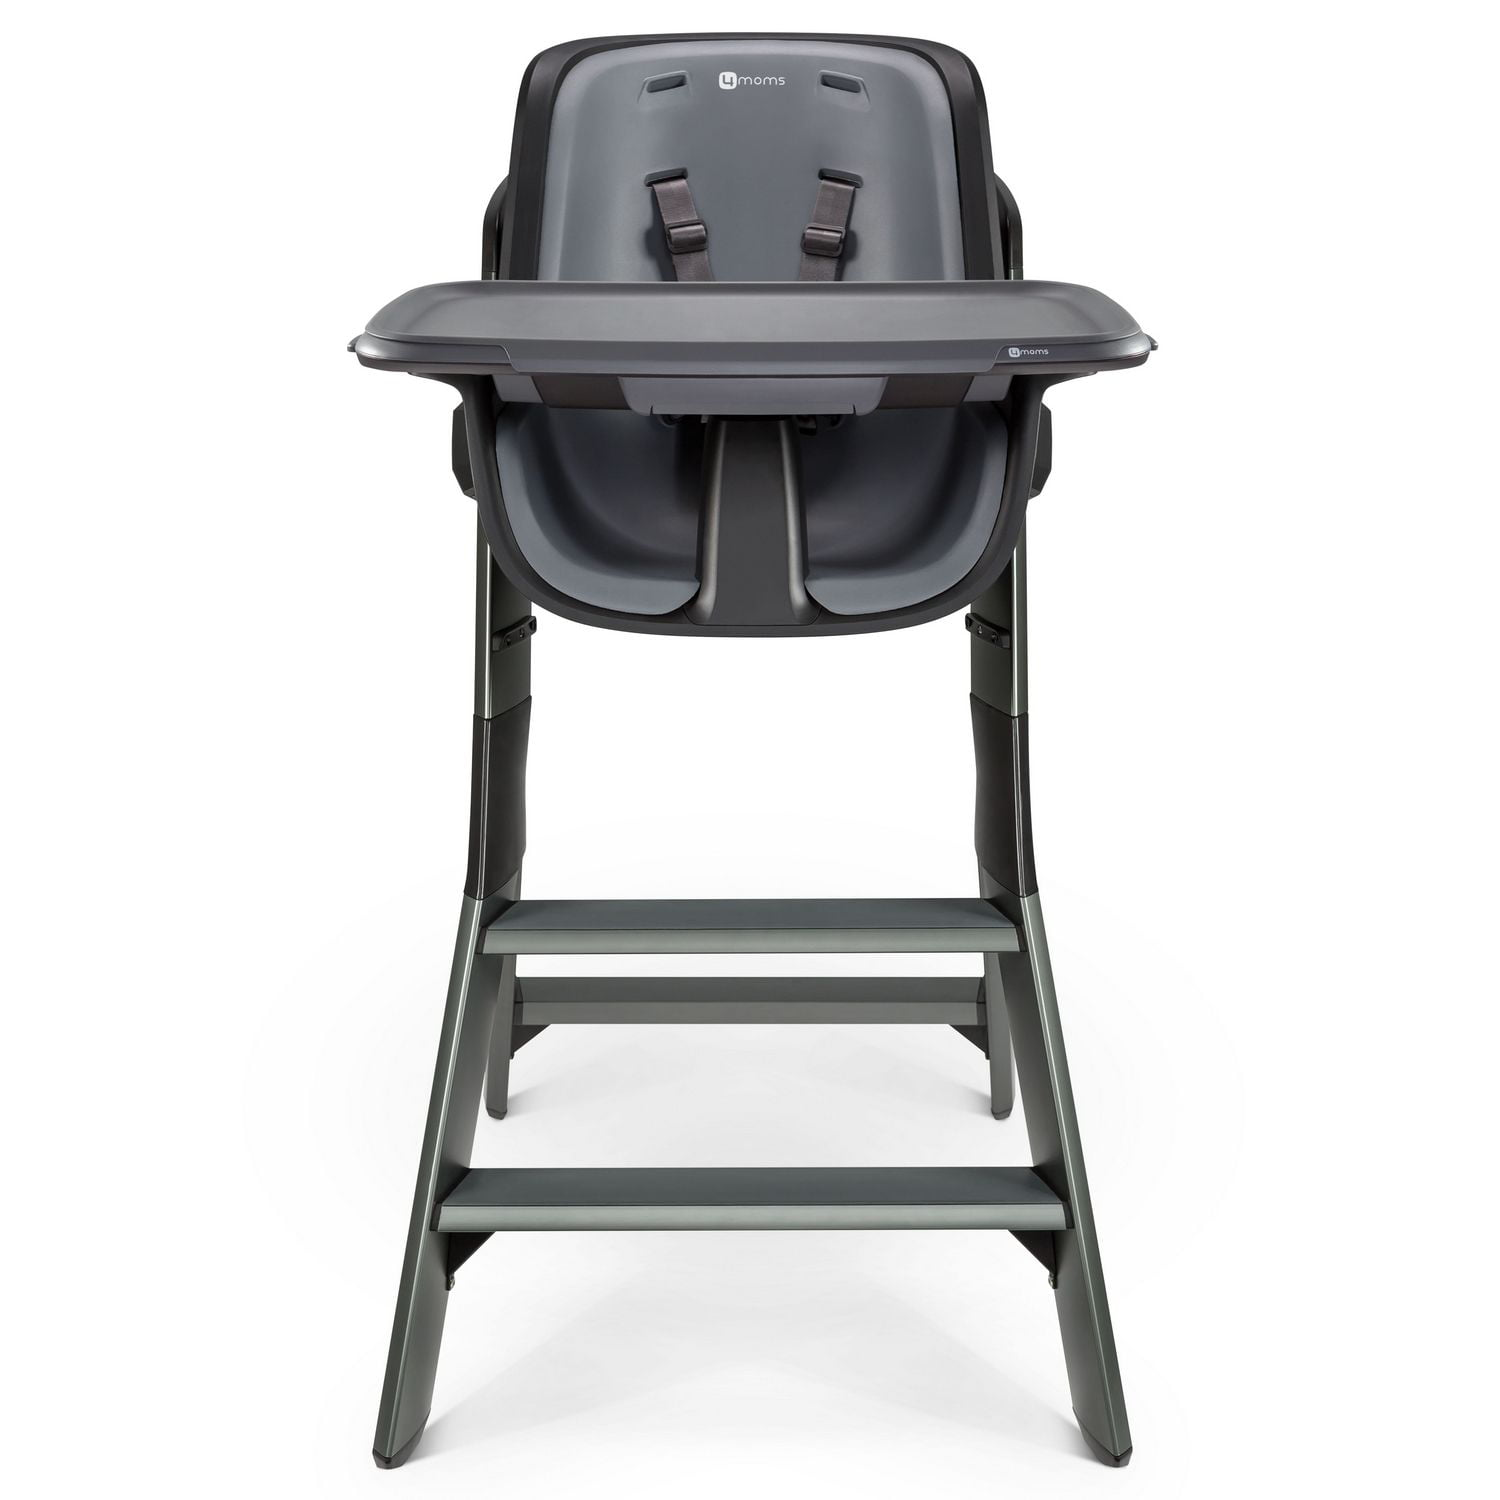 4moms High Chair Black   Grey by 4moms